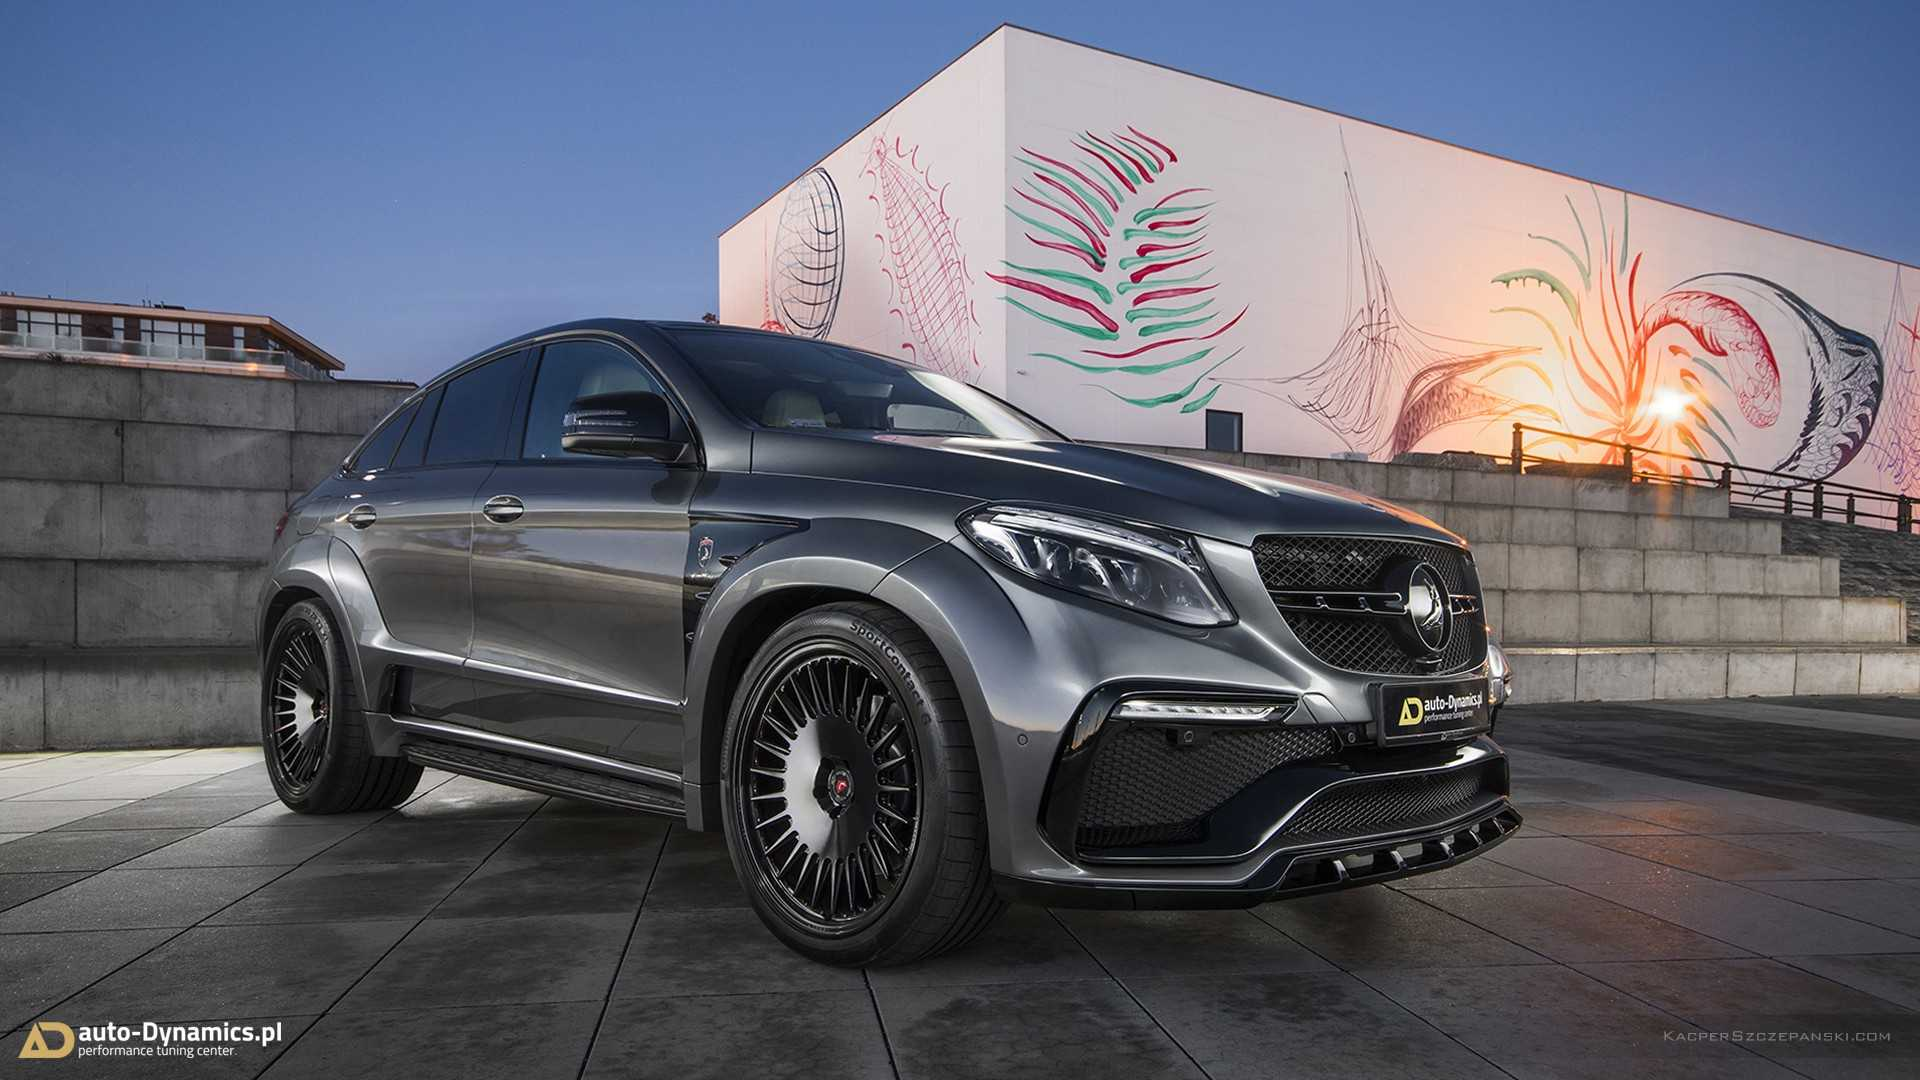 Amg Gle 63 >> 209 Mph Mercedes Amg Gle 63 S Coupe Project Inferno Has 806 Hp